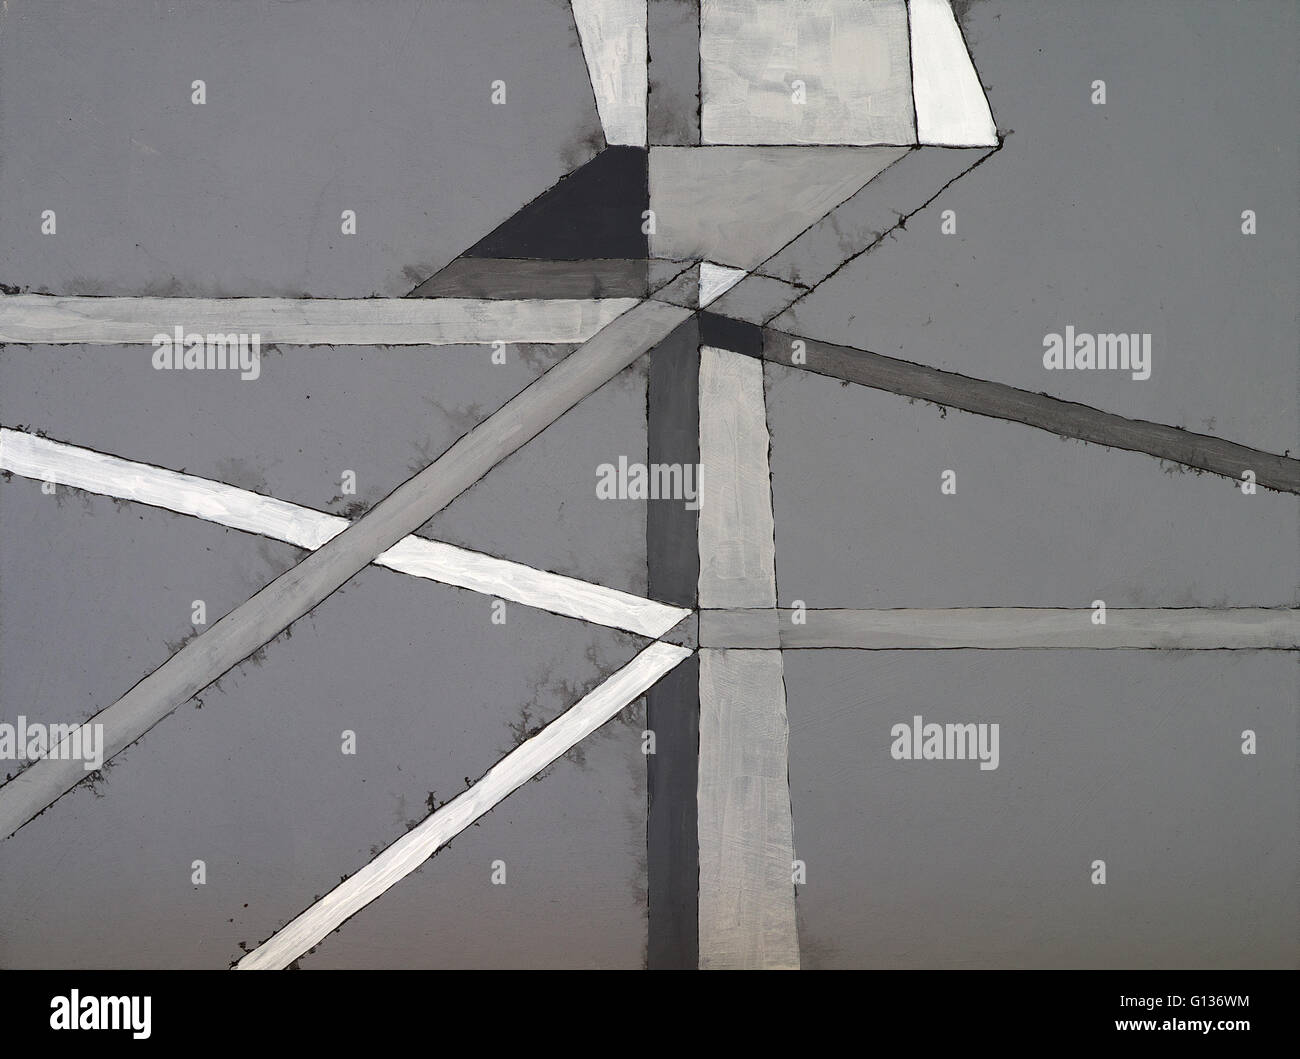 A monochrome geometric abstract painting - Stock Image